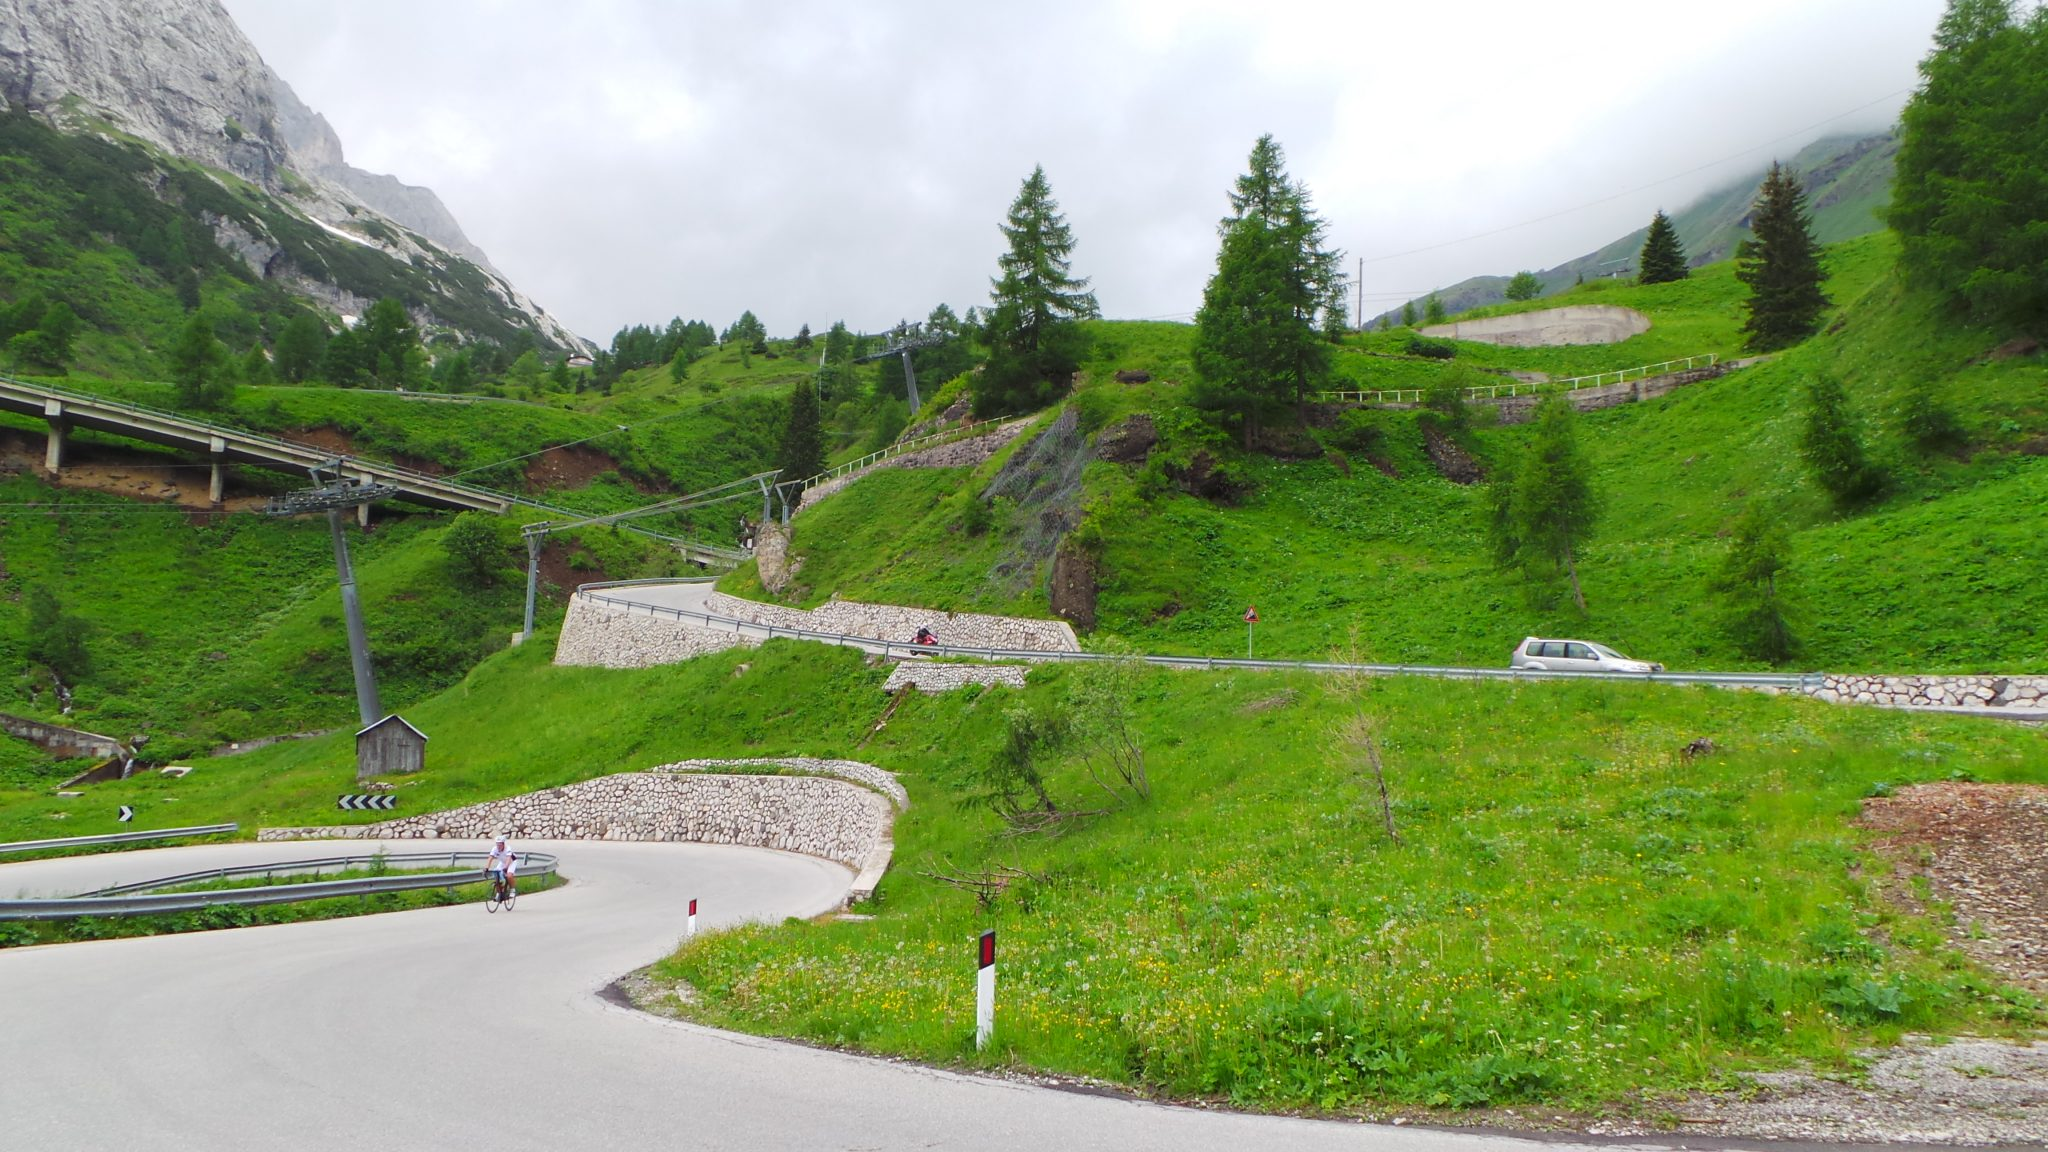 Giro 2015 - nice but steep hairpin section